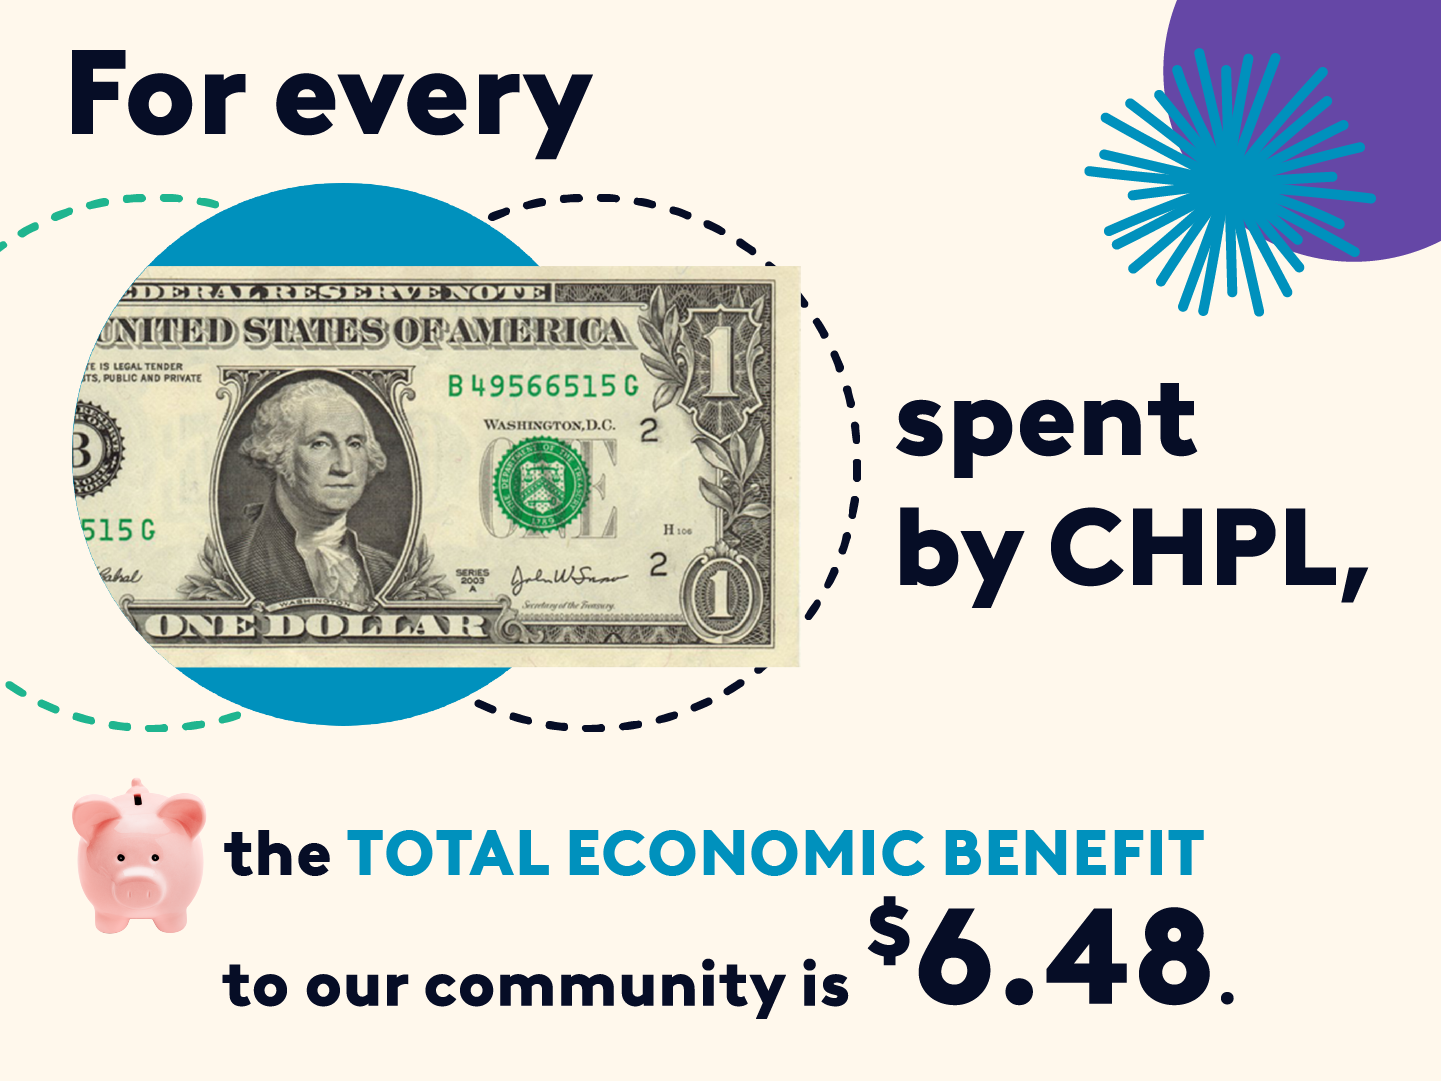 For every $1 spend by CHPL, the TOTAL ECONOMIC BENEFIT to our community is $6.48.